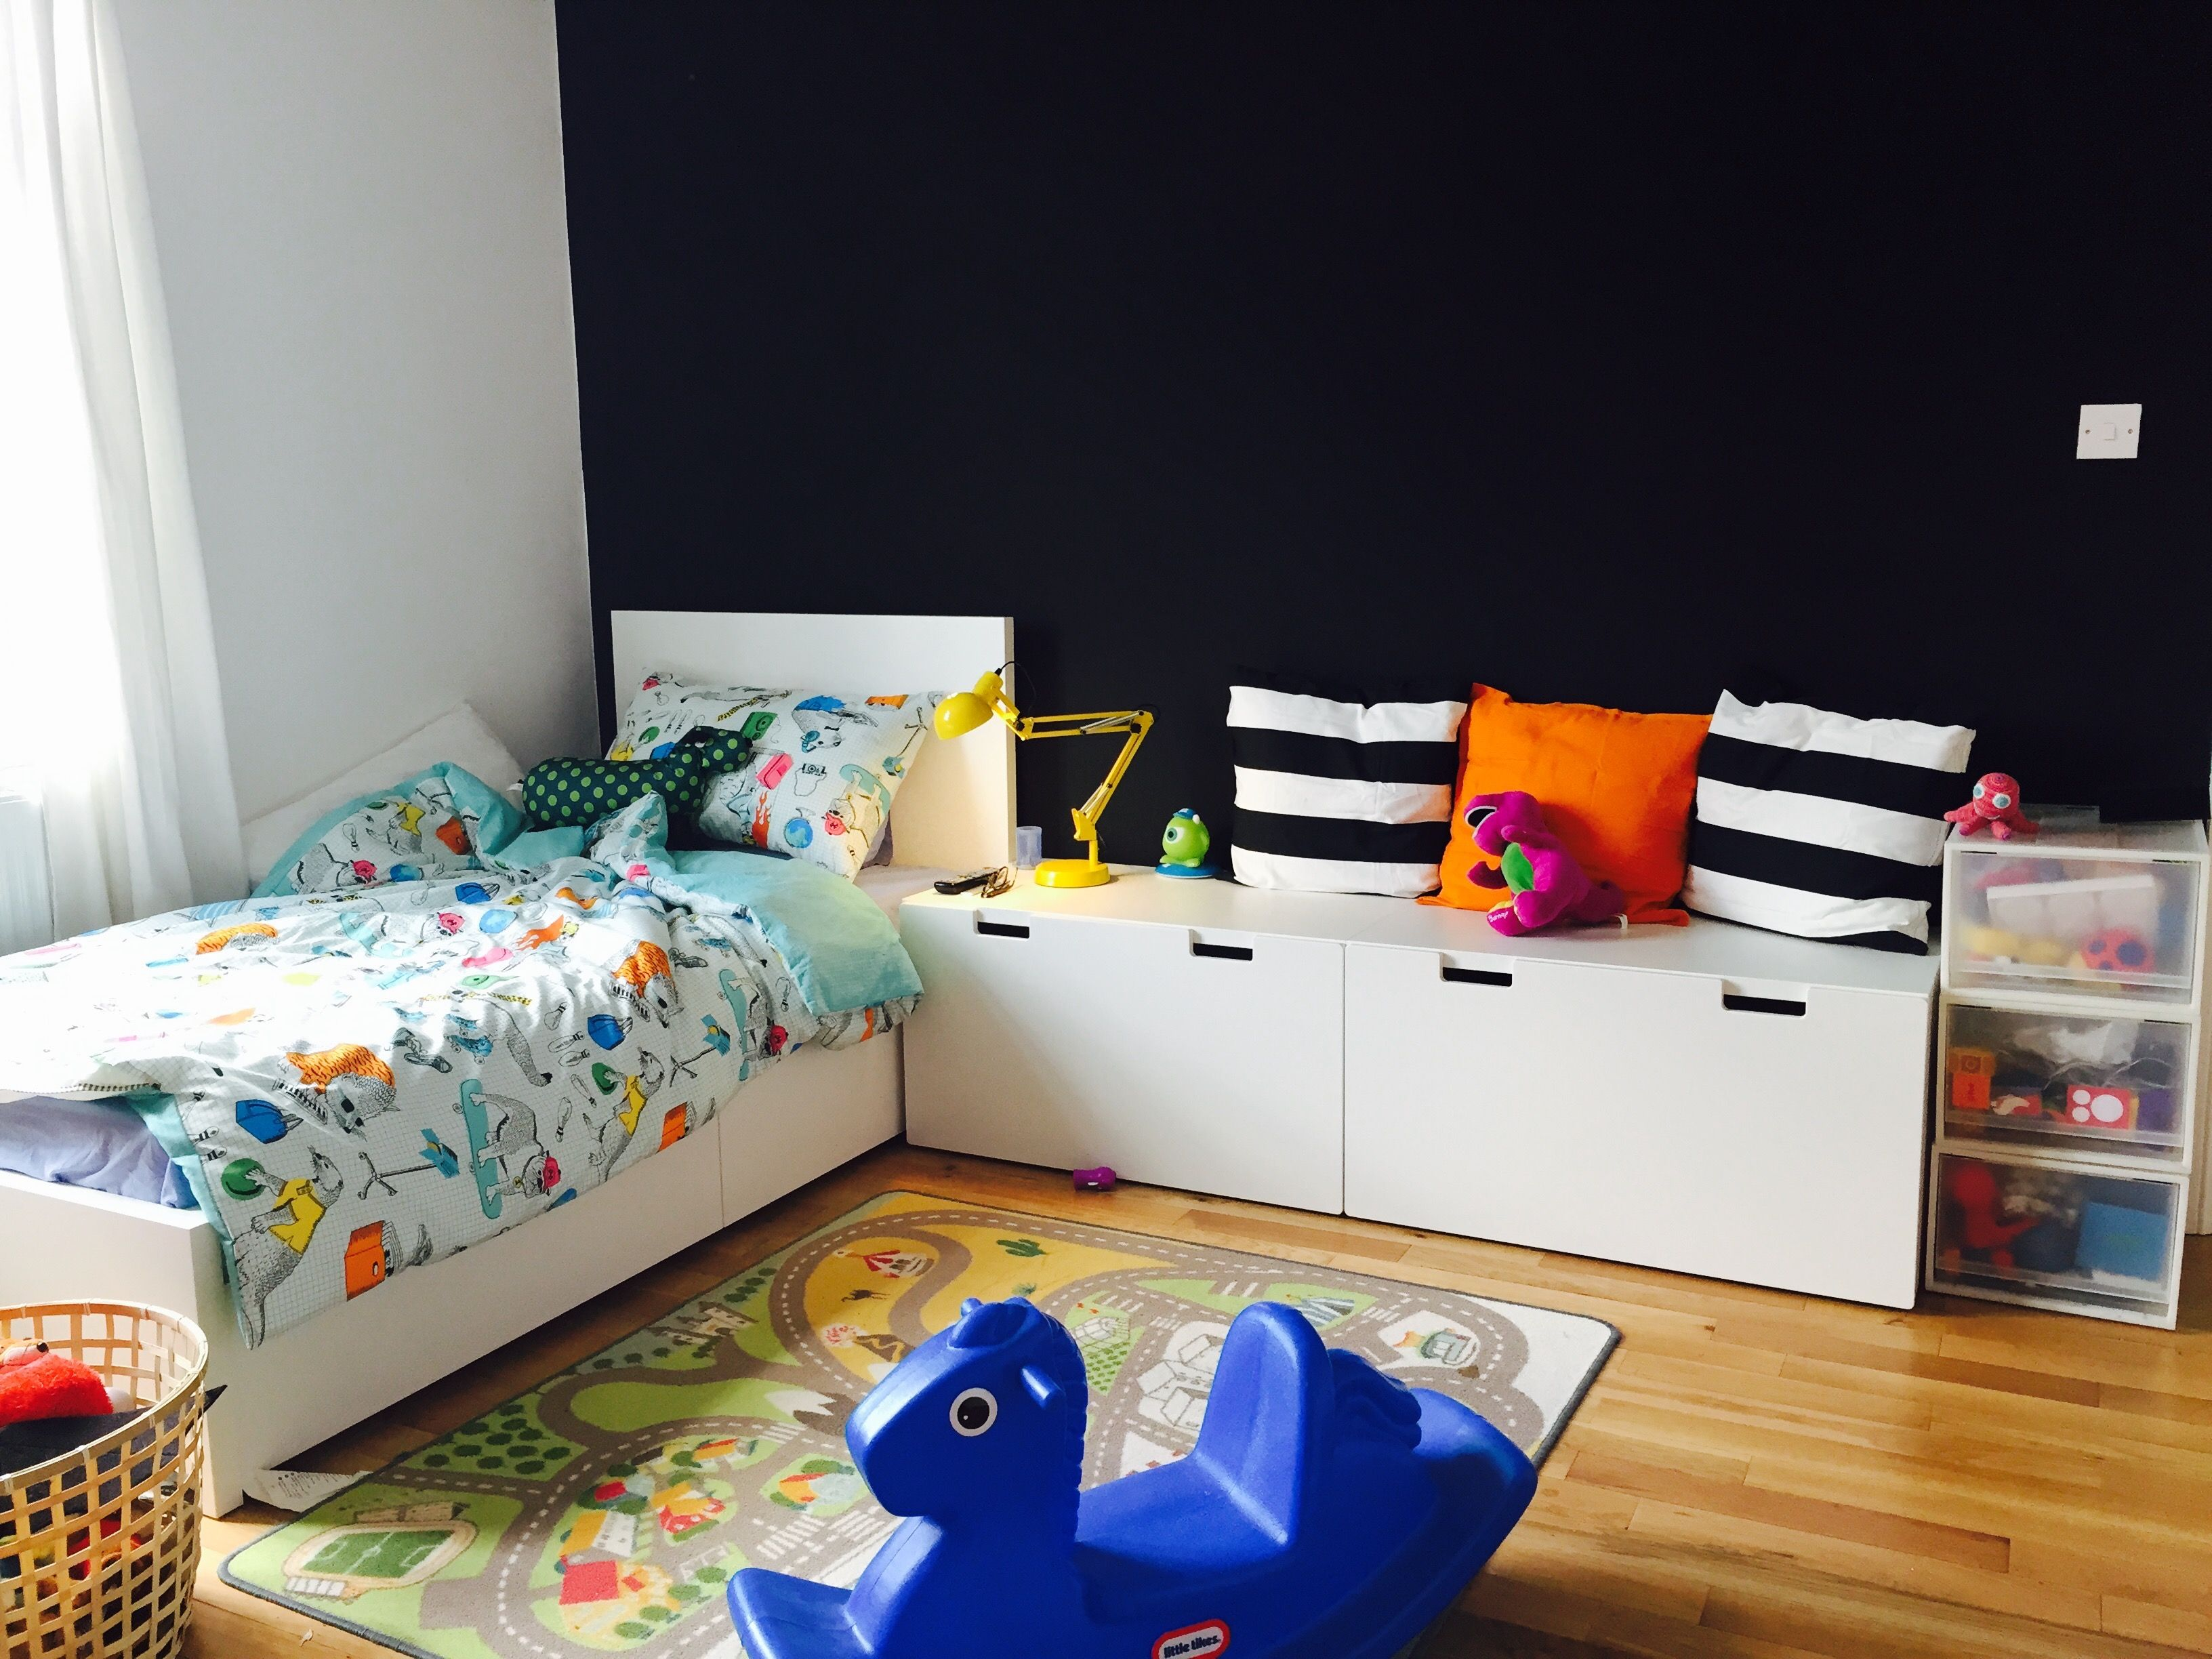 Children's room Ikea MALM bed with STUVA storage benches